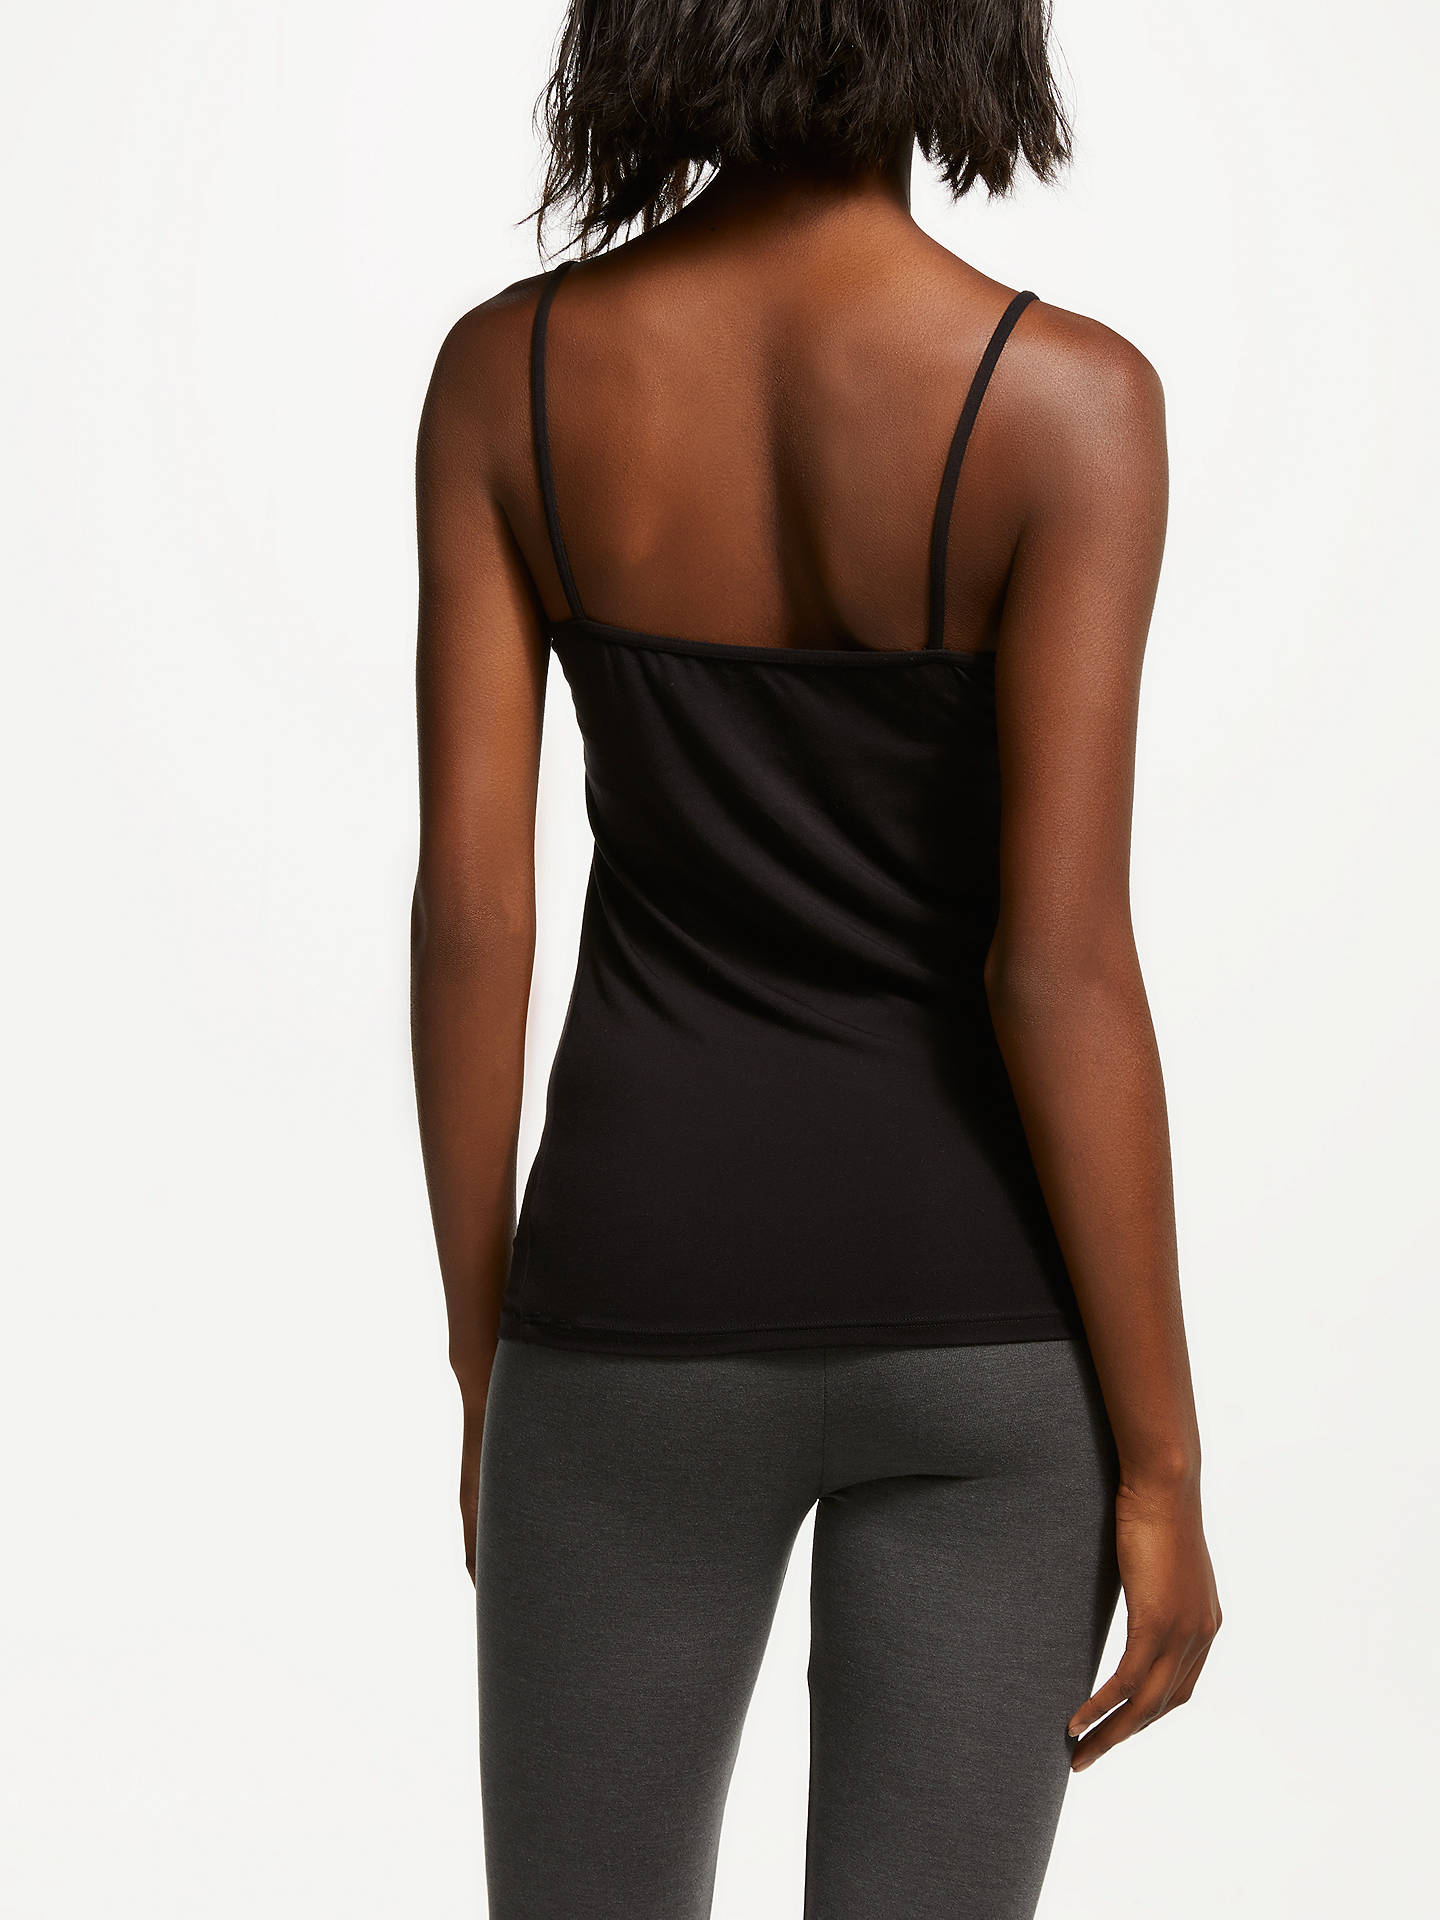 BuyJohn Lewis & Partners Heat Generating Lace Trim Thermal Vest, Black, 8-10 Online at johnlewis.com